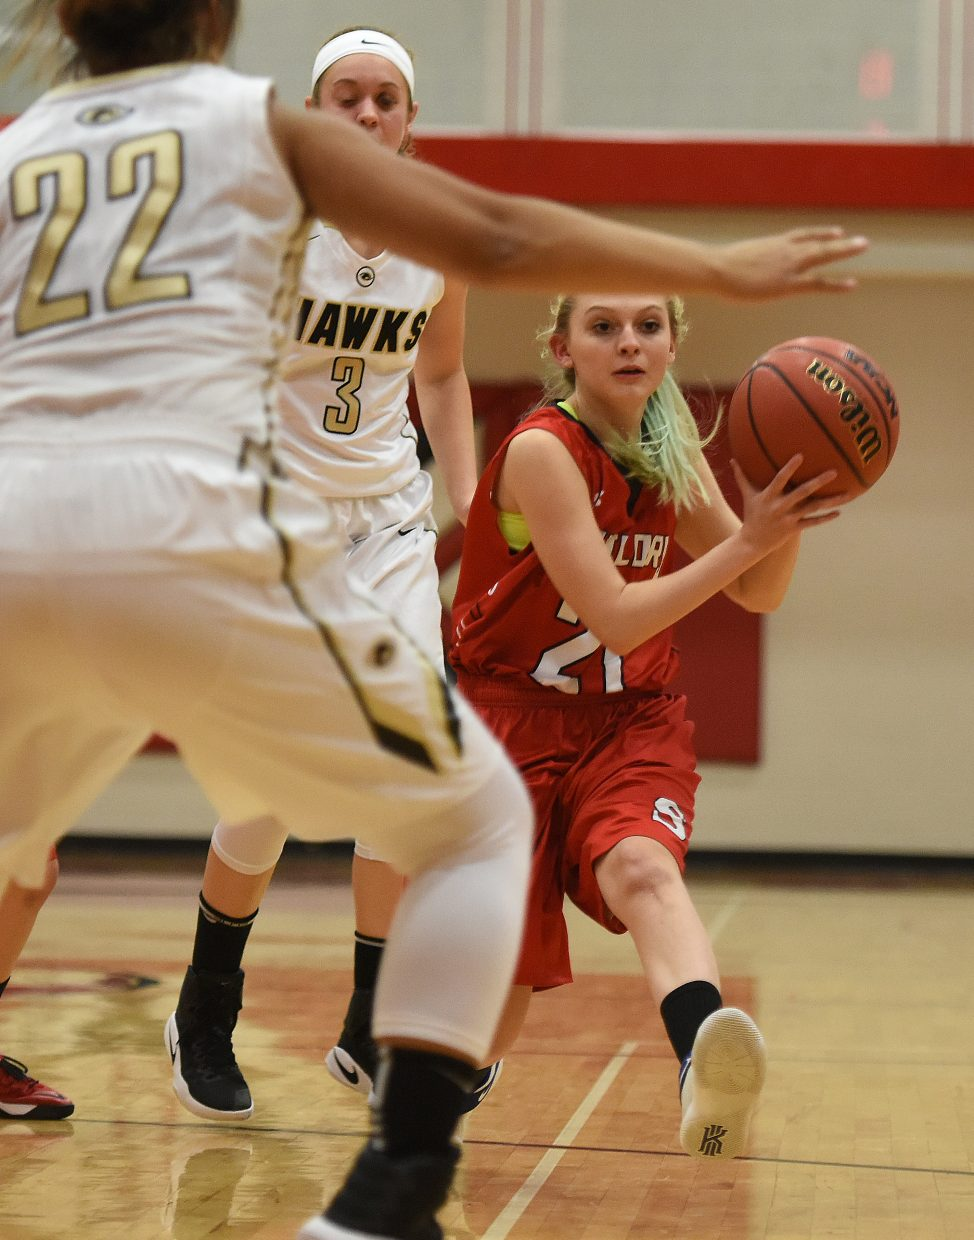 Steamboat's Danaka Bradshaw dishes a pass Friday against Prairie View.